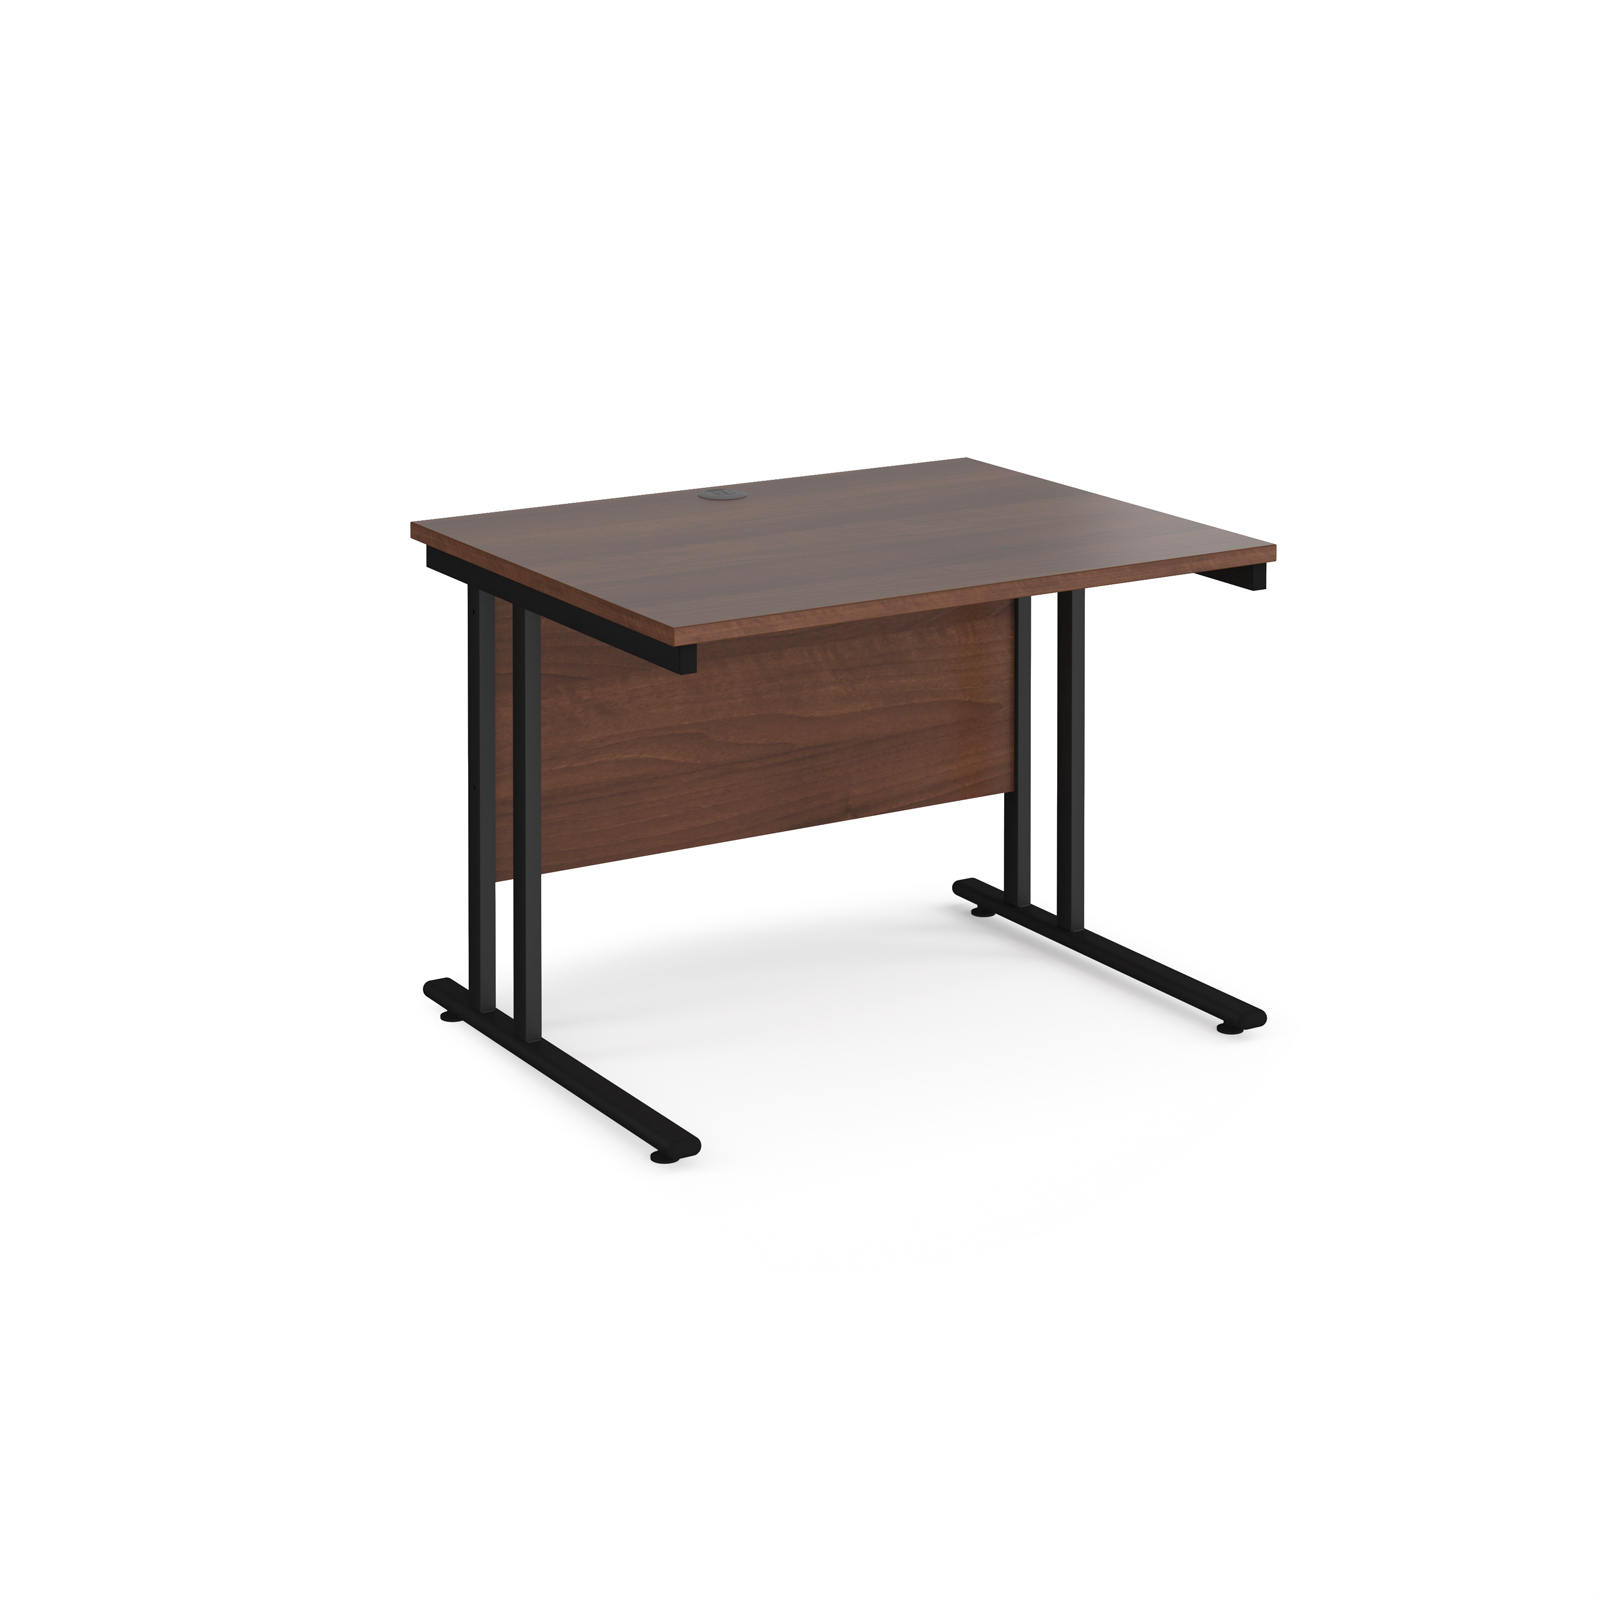 Rectangular Desks Maestro 25 straight desk 1000mm x 800mm - black cantilever leg frame, walnut top